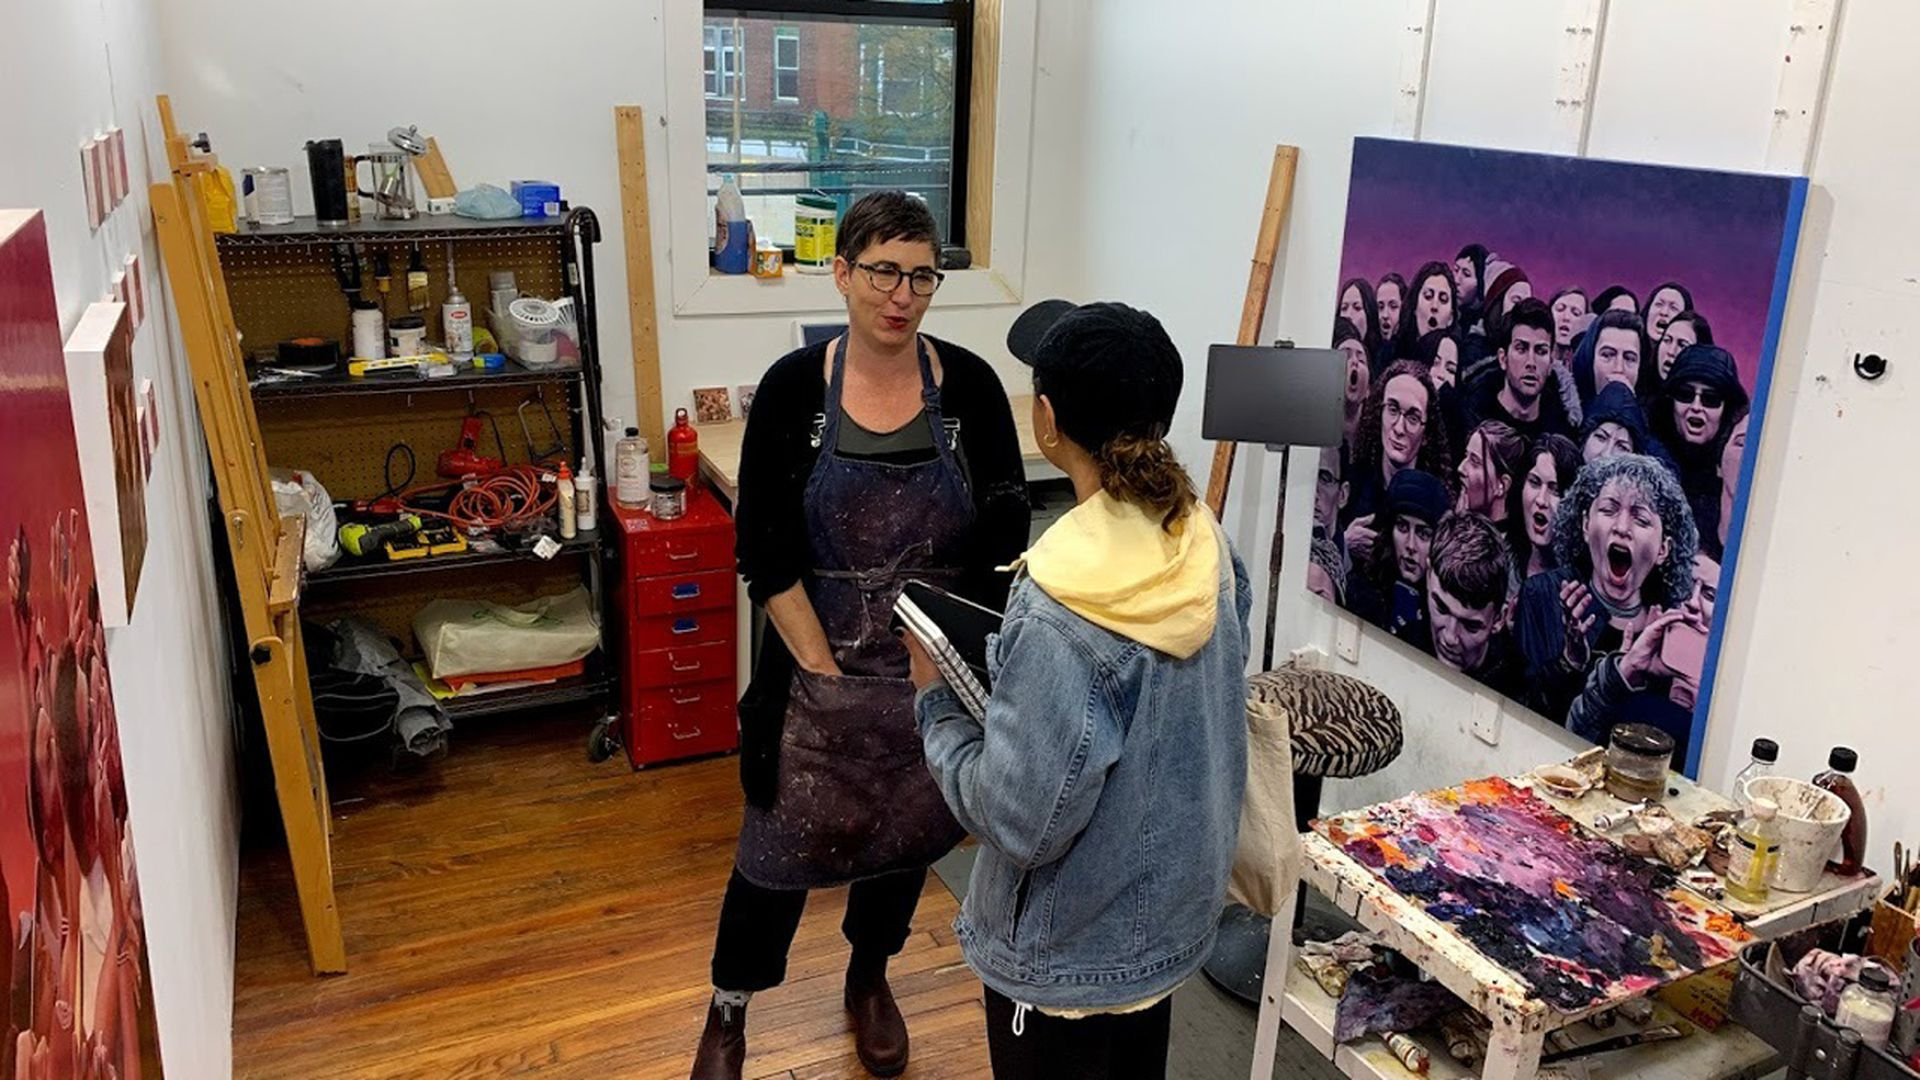 Mary Henderson, left, standing in her studio. Photo courtesy of Michael Mergen/Center for Emerging Visual Artists.